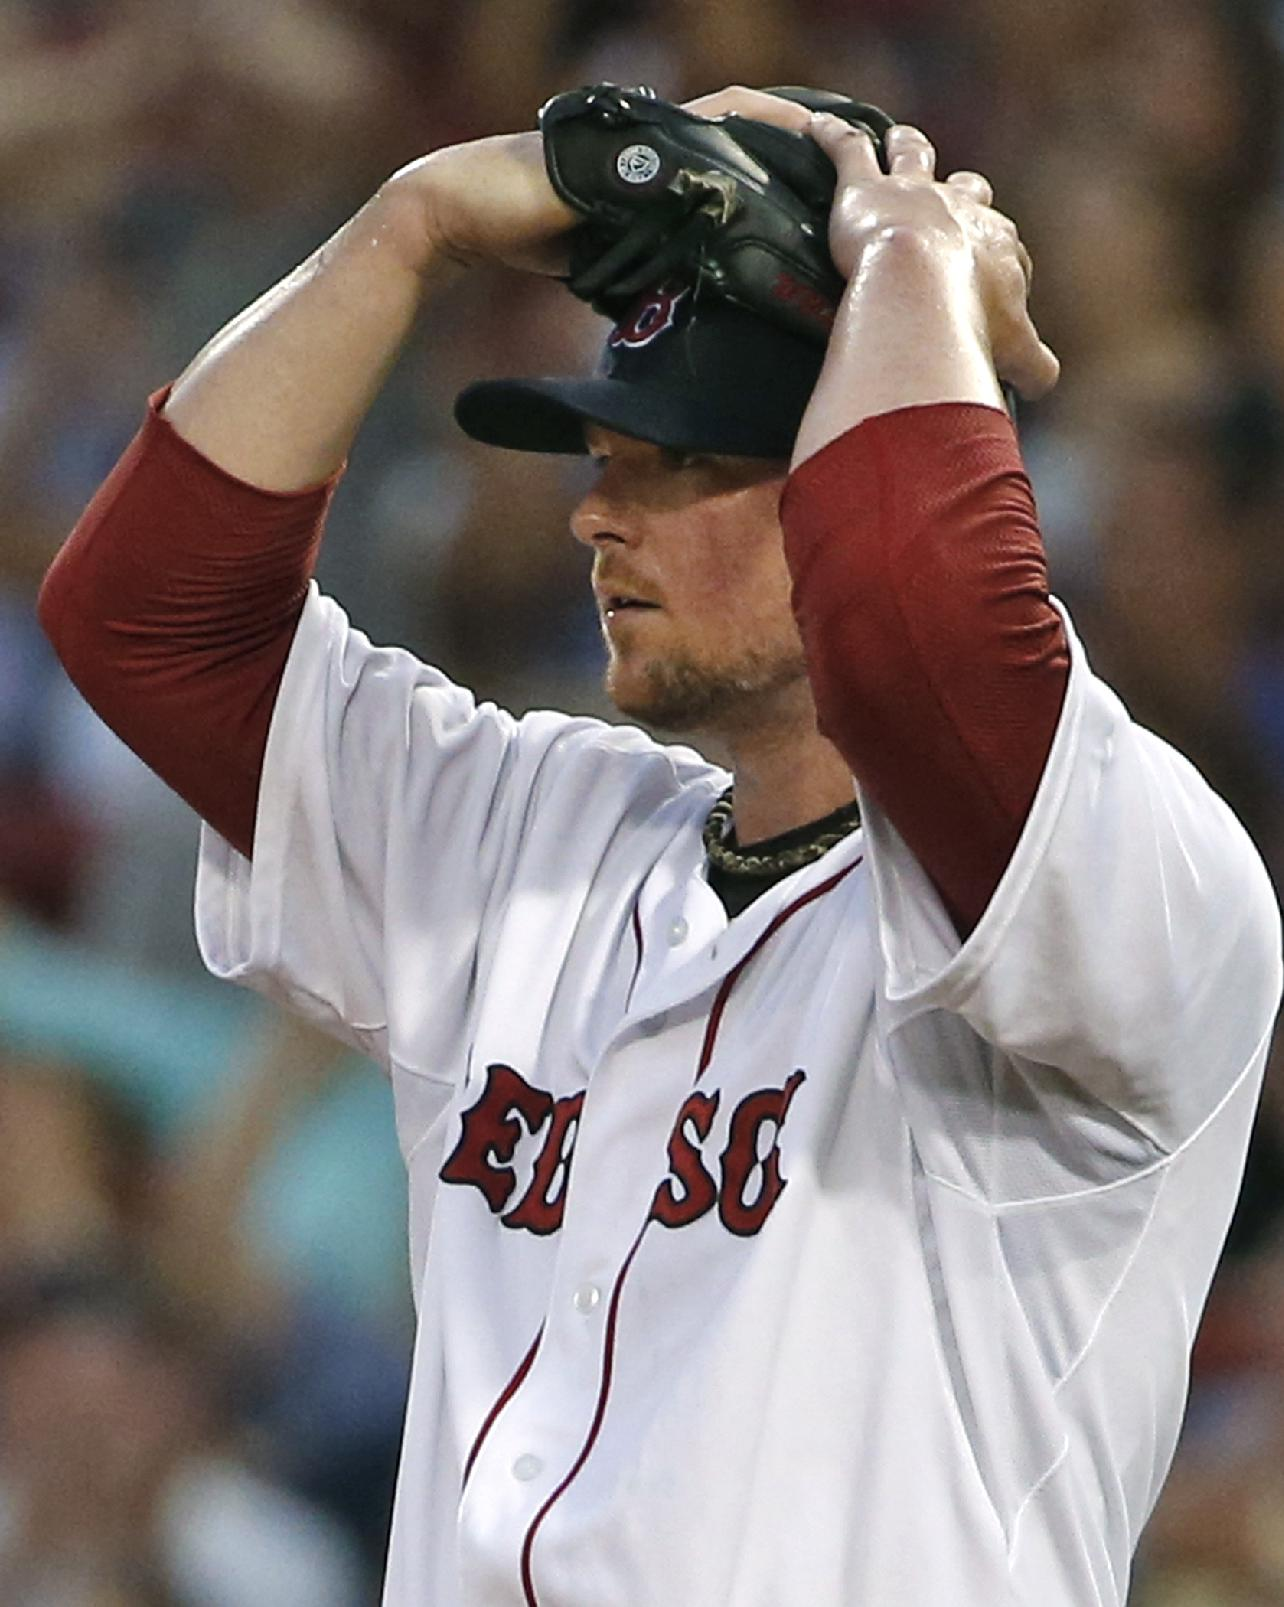 BROCK HOLT! comes out of nowhere to make catch for Jonny Gomes